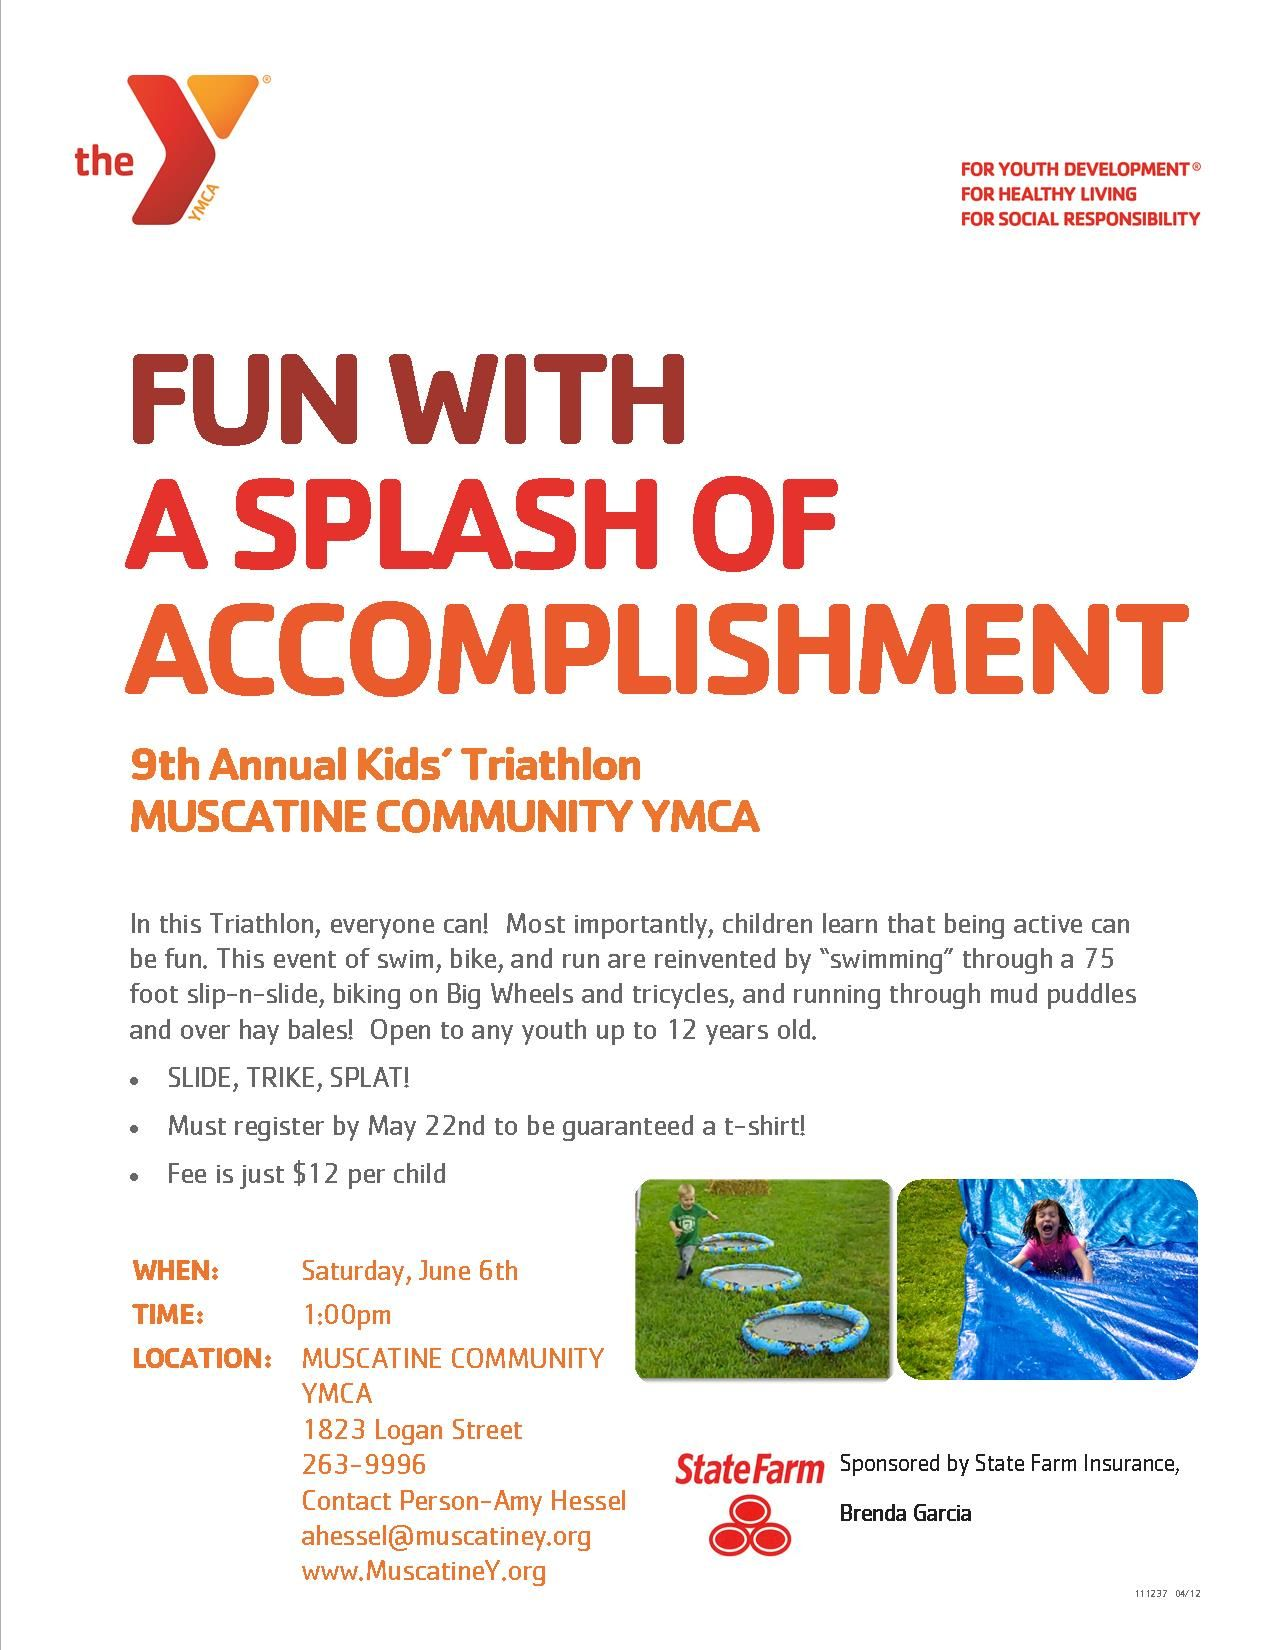 The Y S Fun With A Splash Of Accomplishment 9th Annual Kids